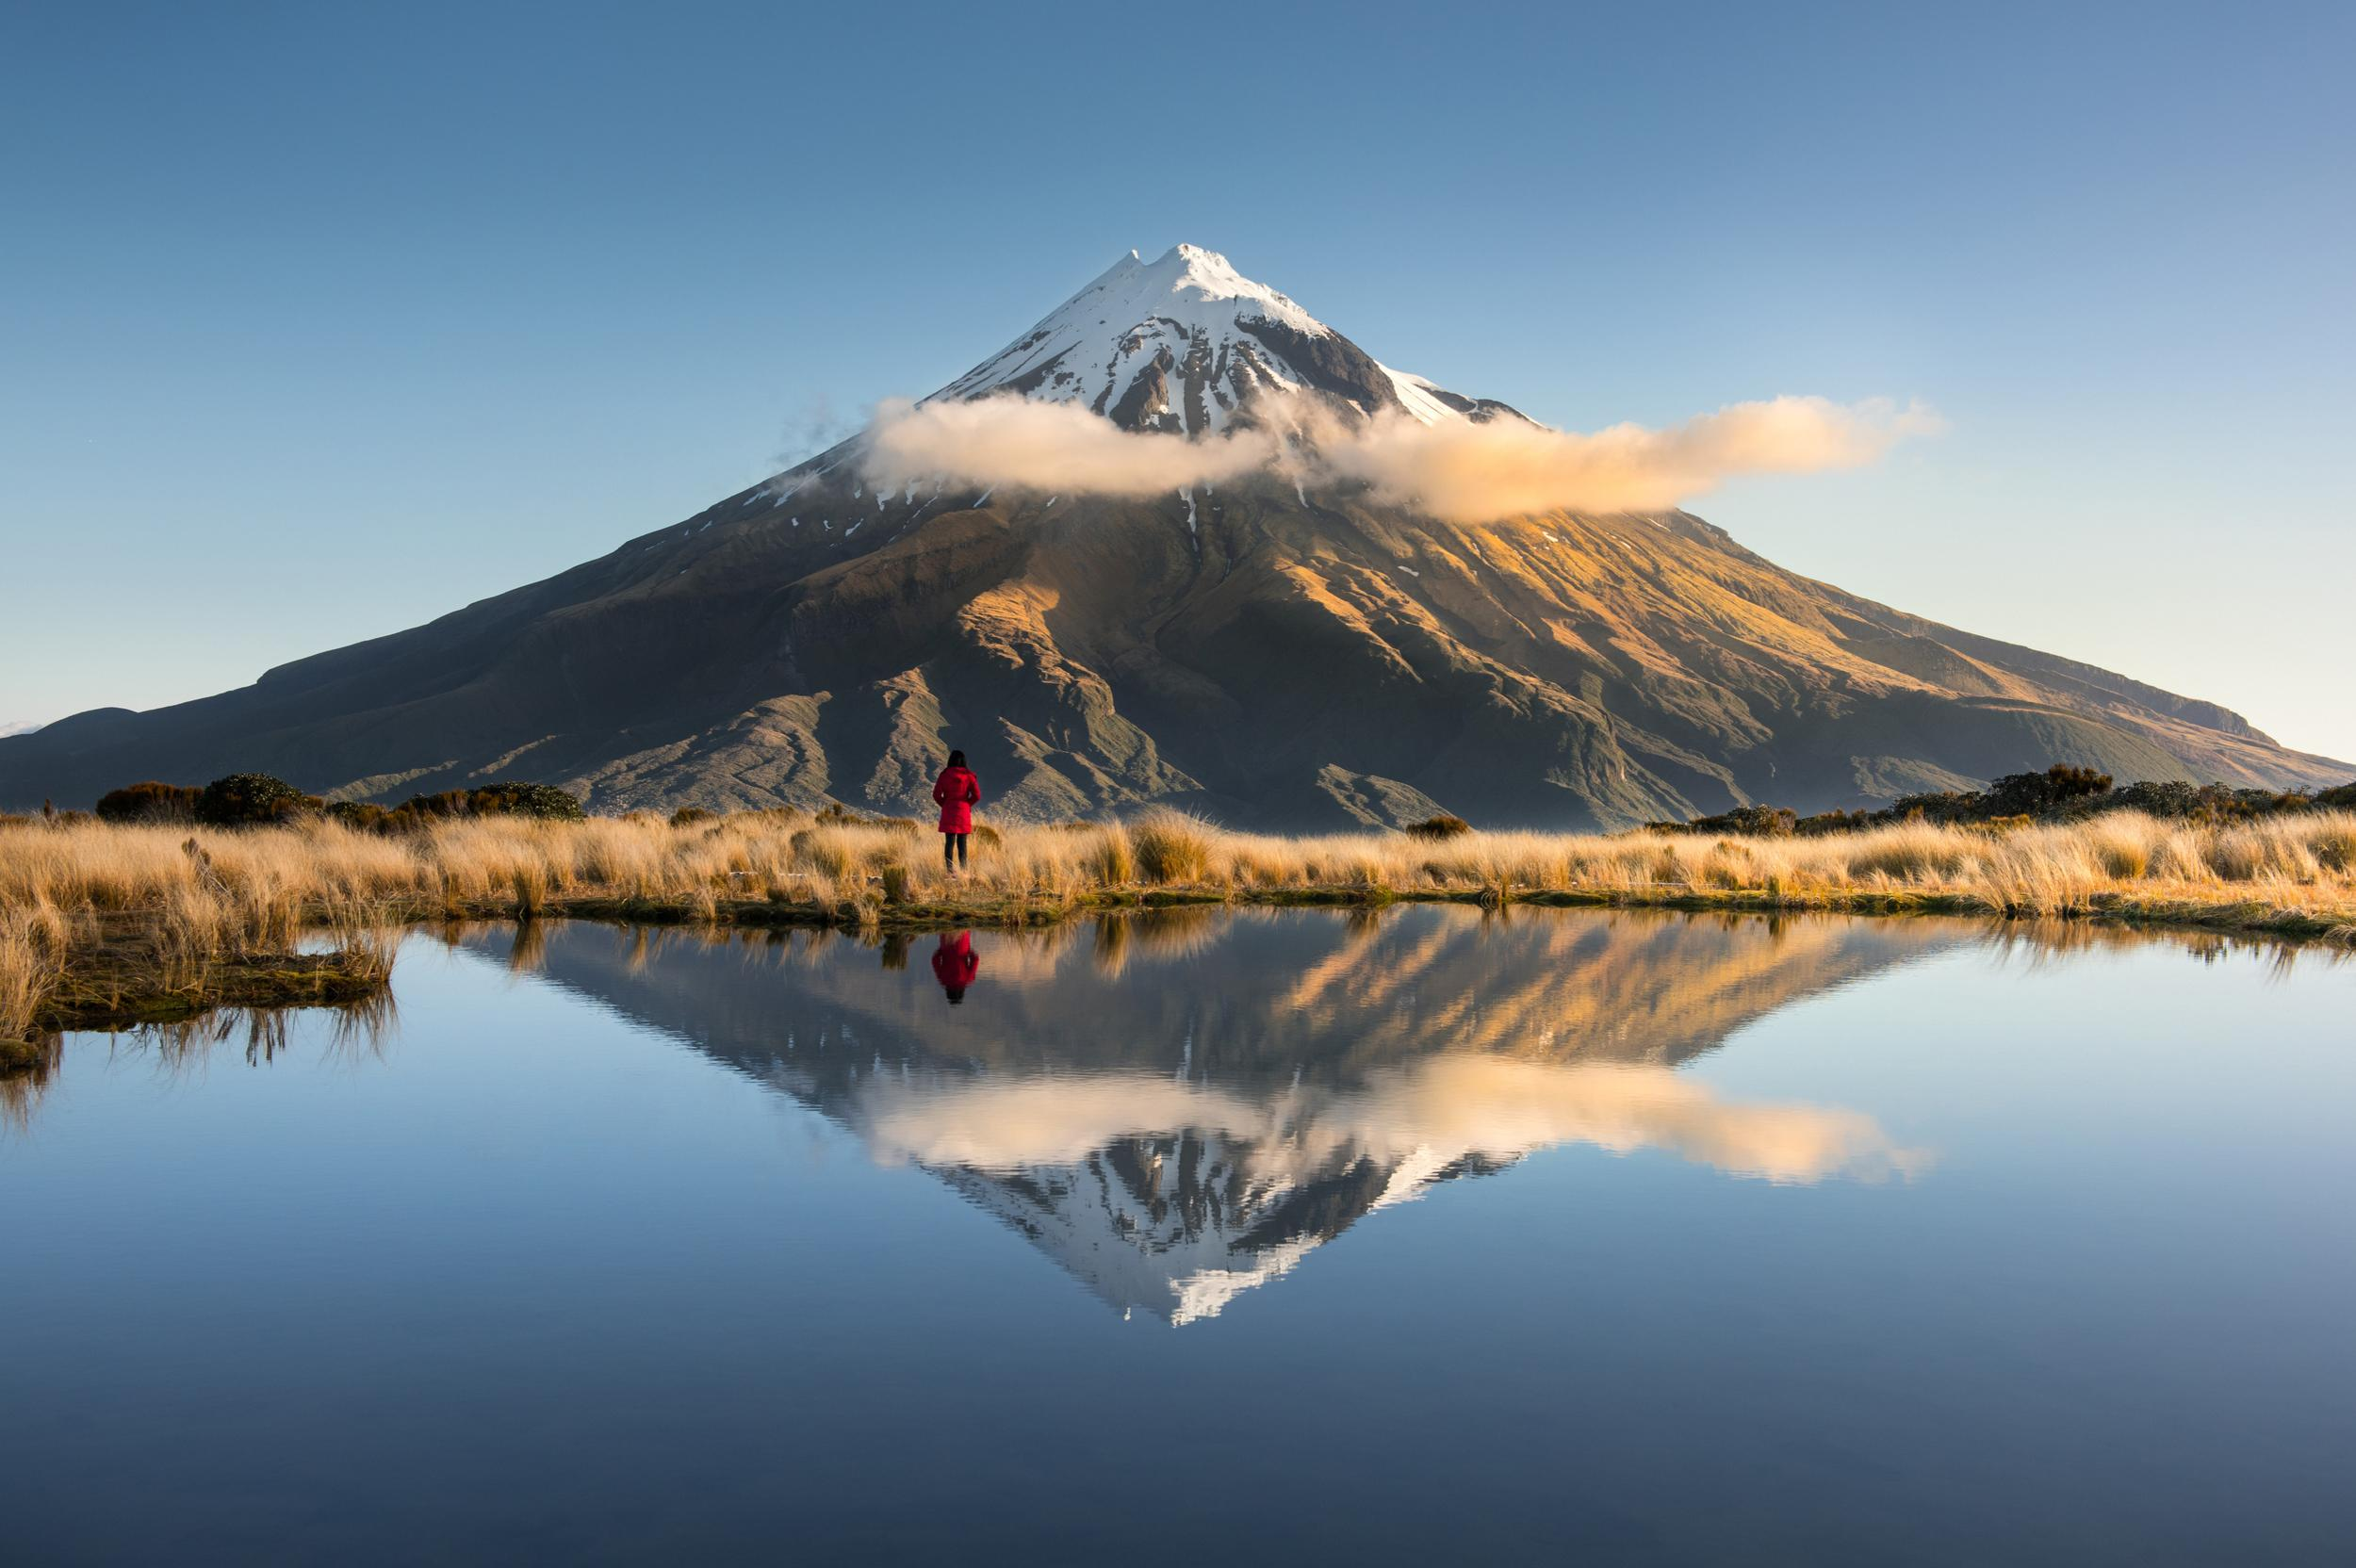 """Taranakiis one of <a href=""""http://travel.aol.co.uk/tag/new+zealand"""" target=""""_blank"""">New Zealand</a>'s best-kept secrets: only two per cent of New Zealand's international visitors currently bother to venture out this way. But a new motto – 'A Little Bit Out There' – offsets the region's remote location. In nearby Egmont National Park, meanwhile, a magnificent hiking trail is emerging from the shadows to challenge the Tongariro Alpine Crossing as the country's finest one-day walk."""